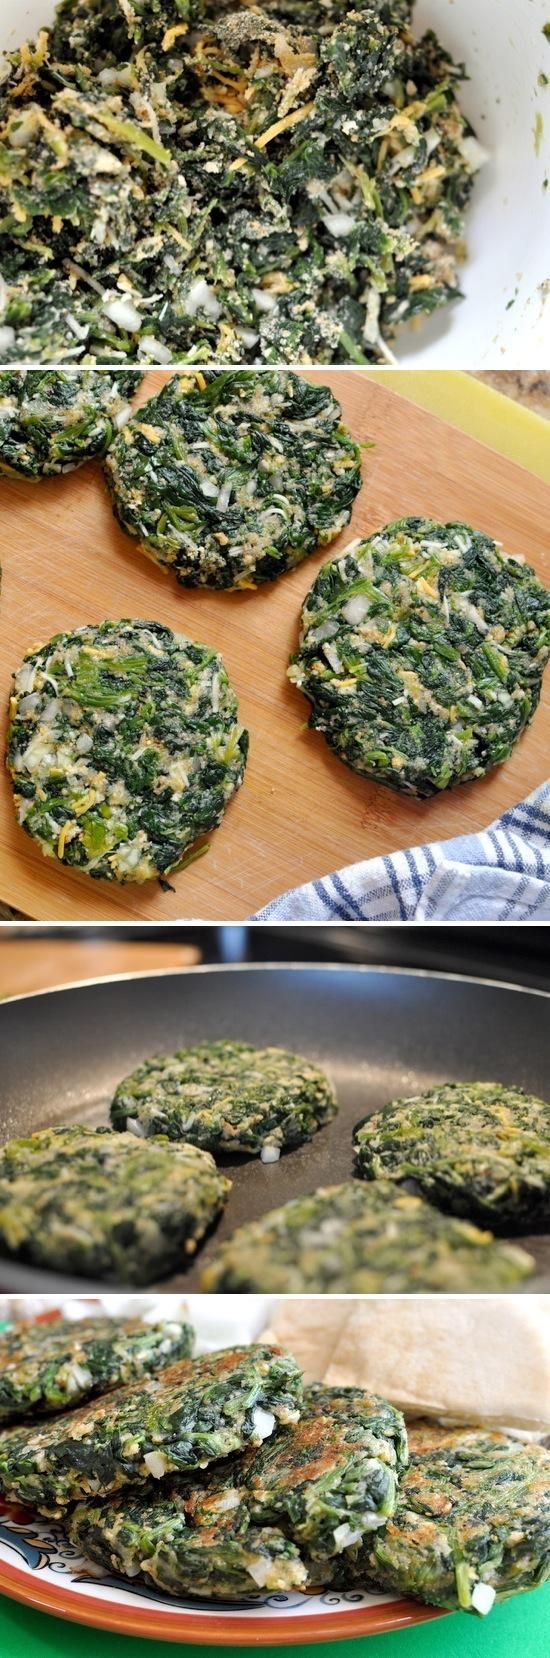 "spinach ""burgers"". I make these all the time. So delicious, cheap, and simple!  #Nutrición y #Salud YG > nutricionysaludyg.com"